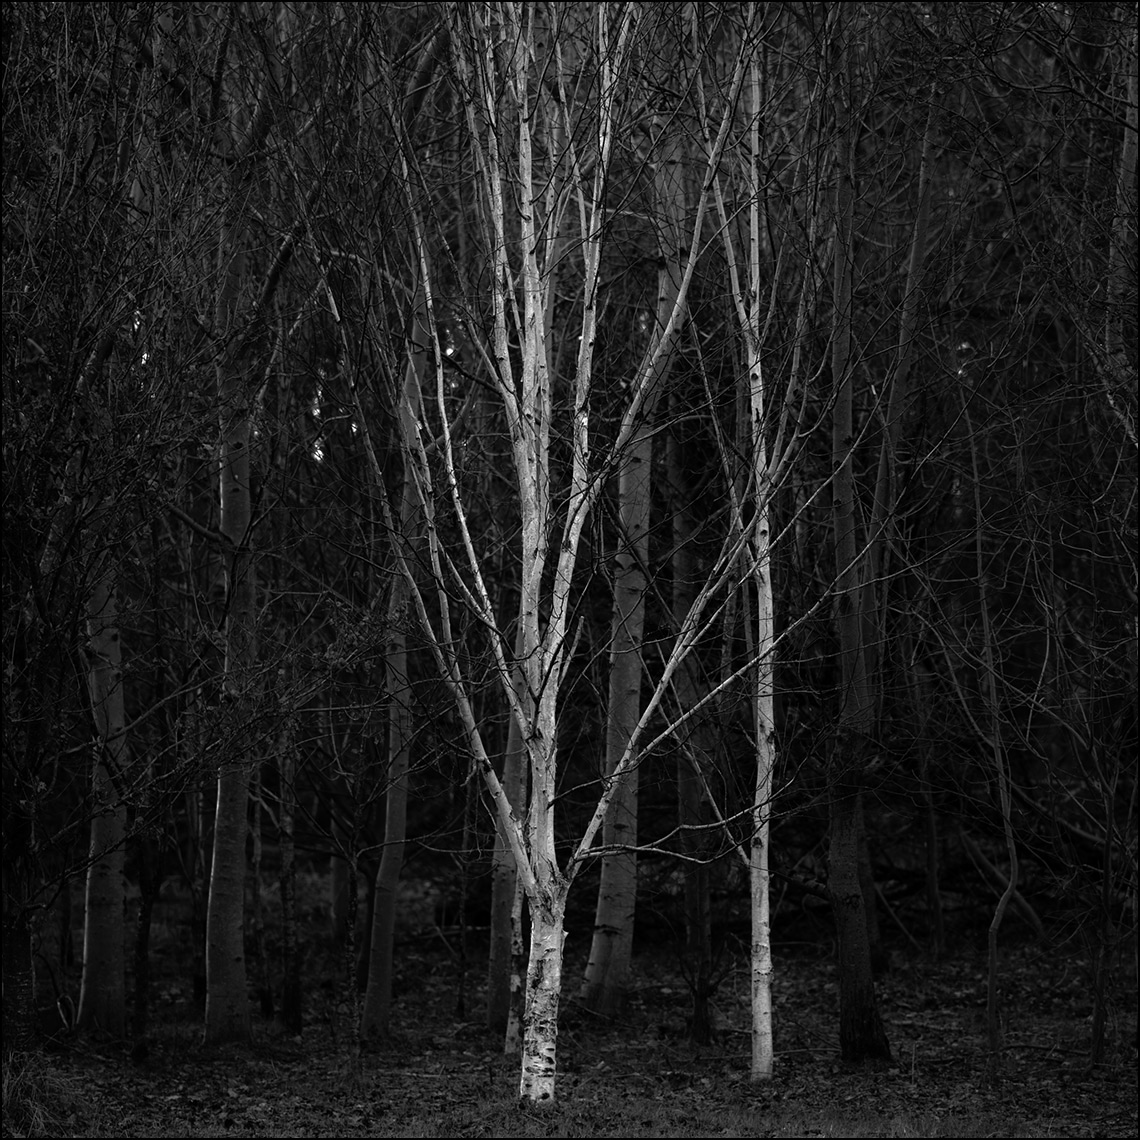 Haggs-white-tree ©Paul Hampton Photographer Glasgow